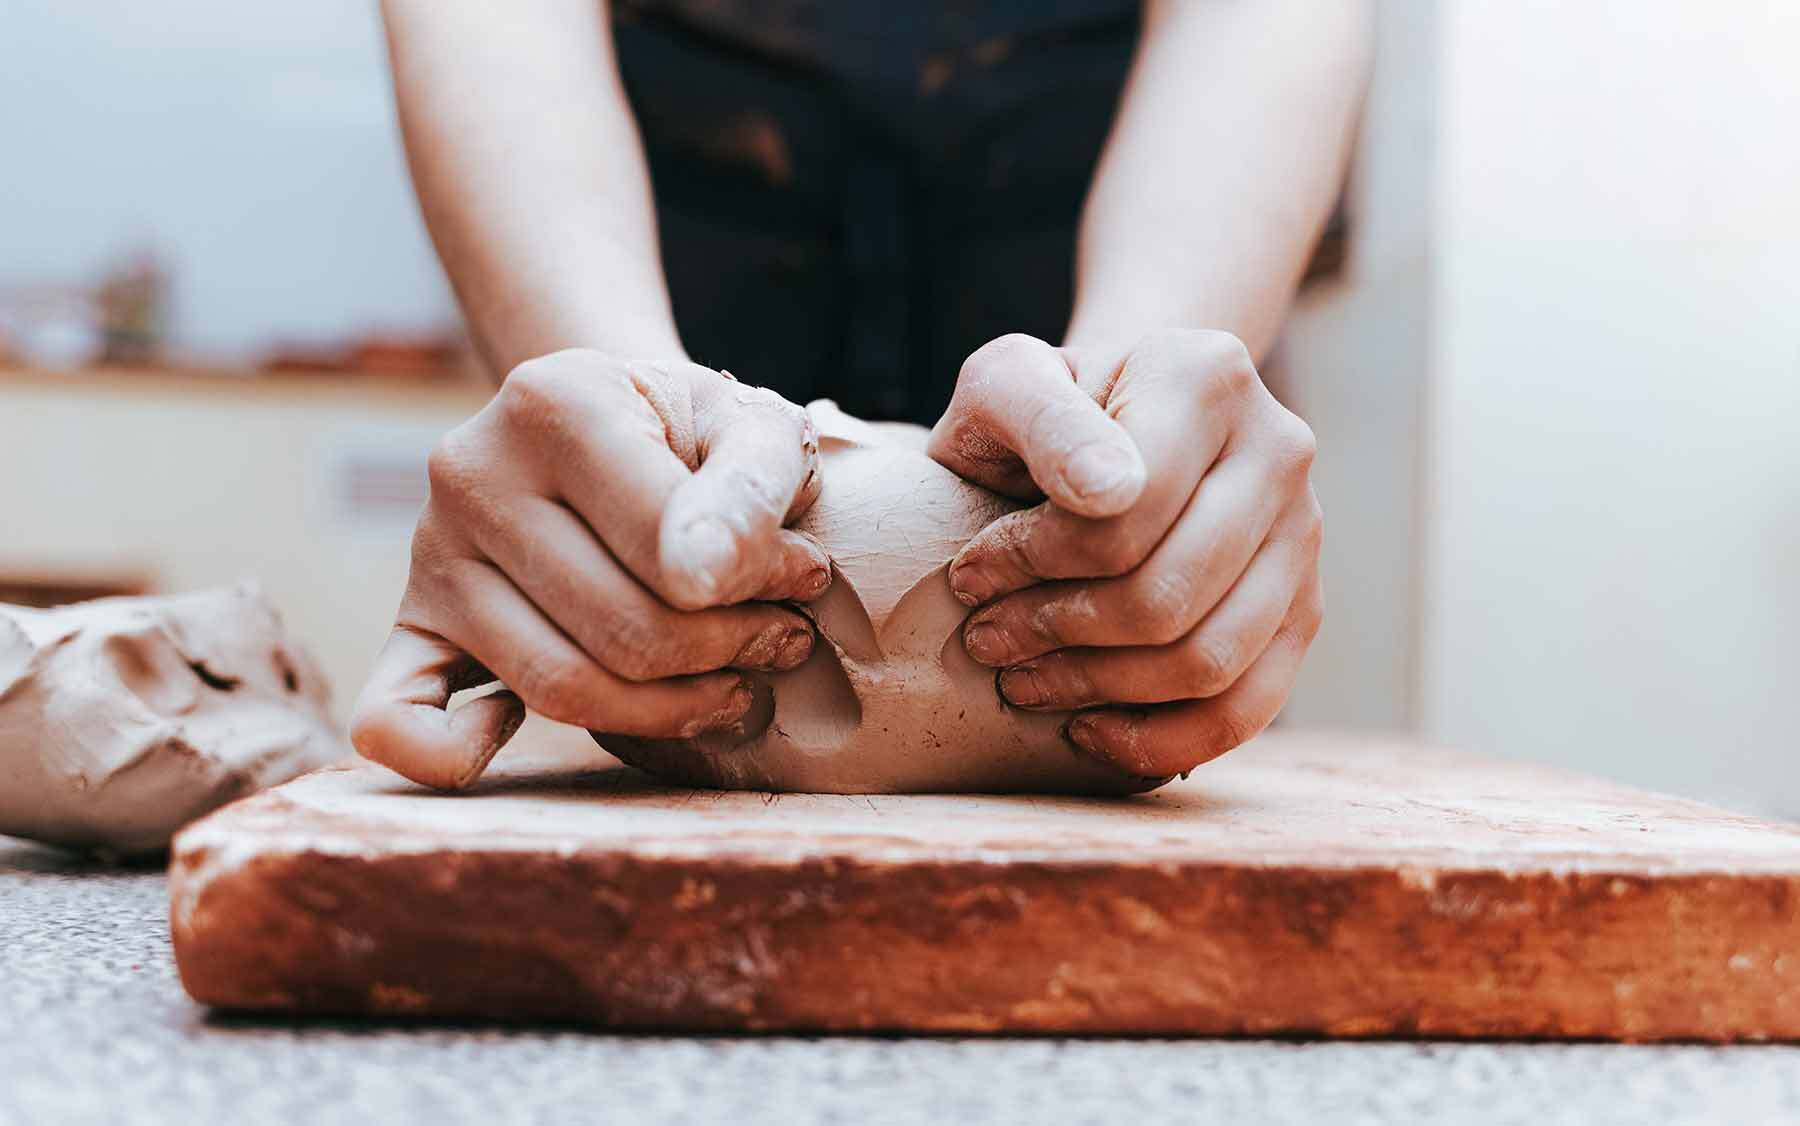 Hands shapoing clay on a table